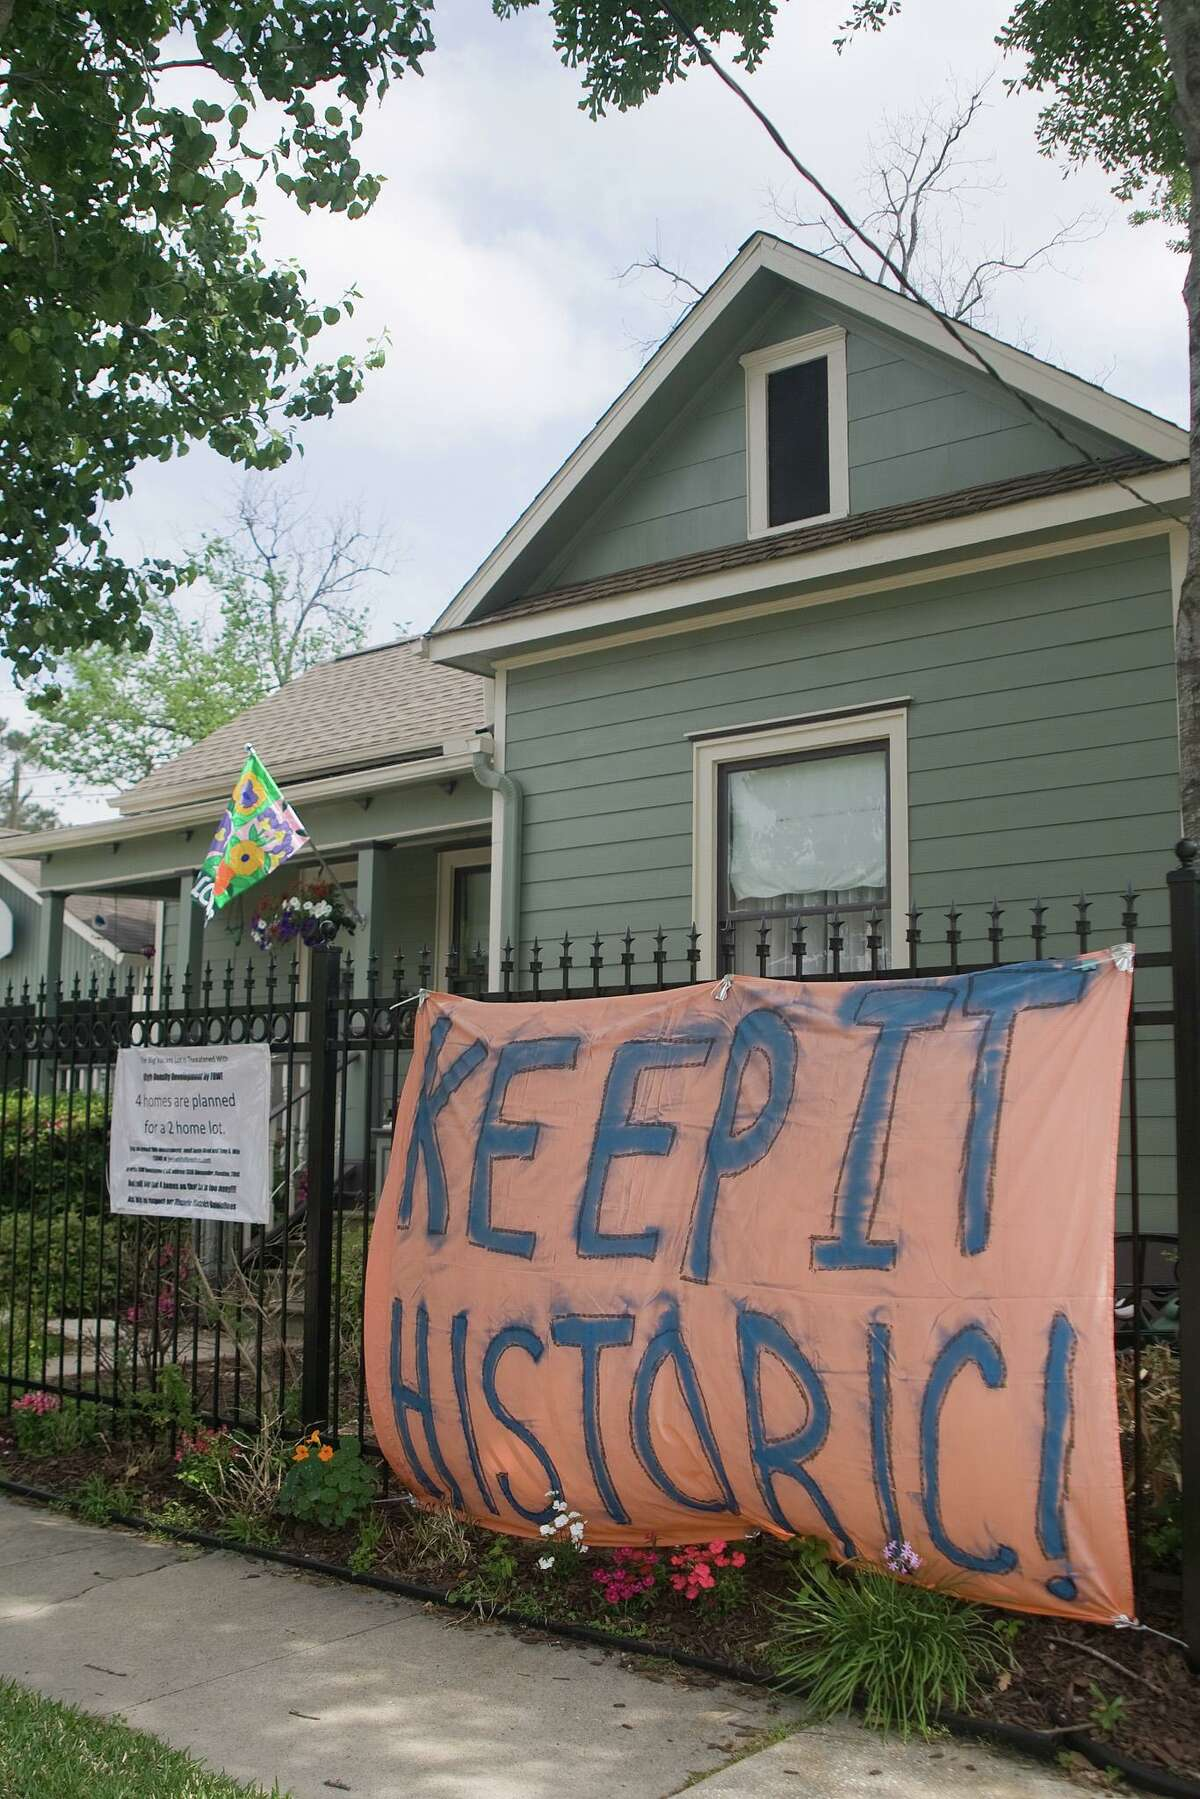 Signs protesting the proposed construction of 4 homes on a double-sized lot at 15th and Rutledge in the Heights Historic District are attached to walls, fences, and stands around the area. Photo by R. Clayton McKee